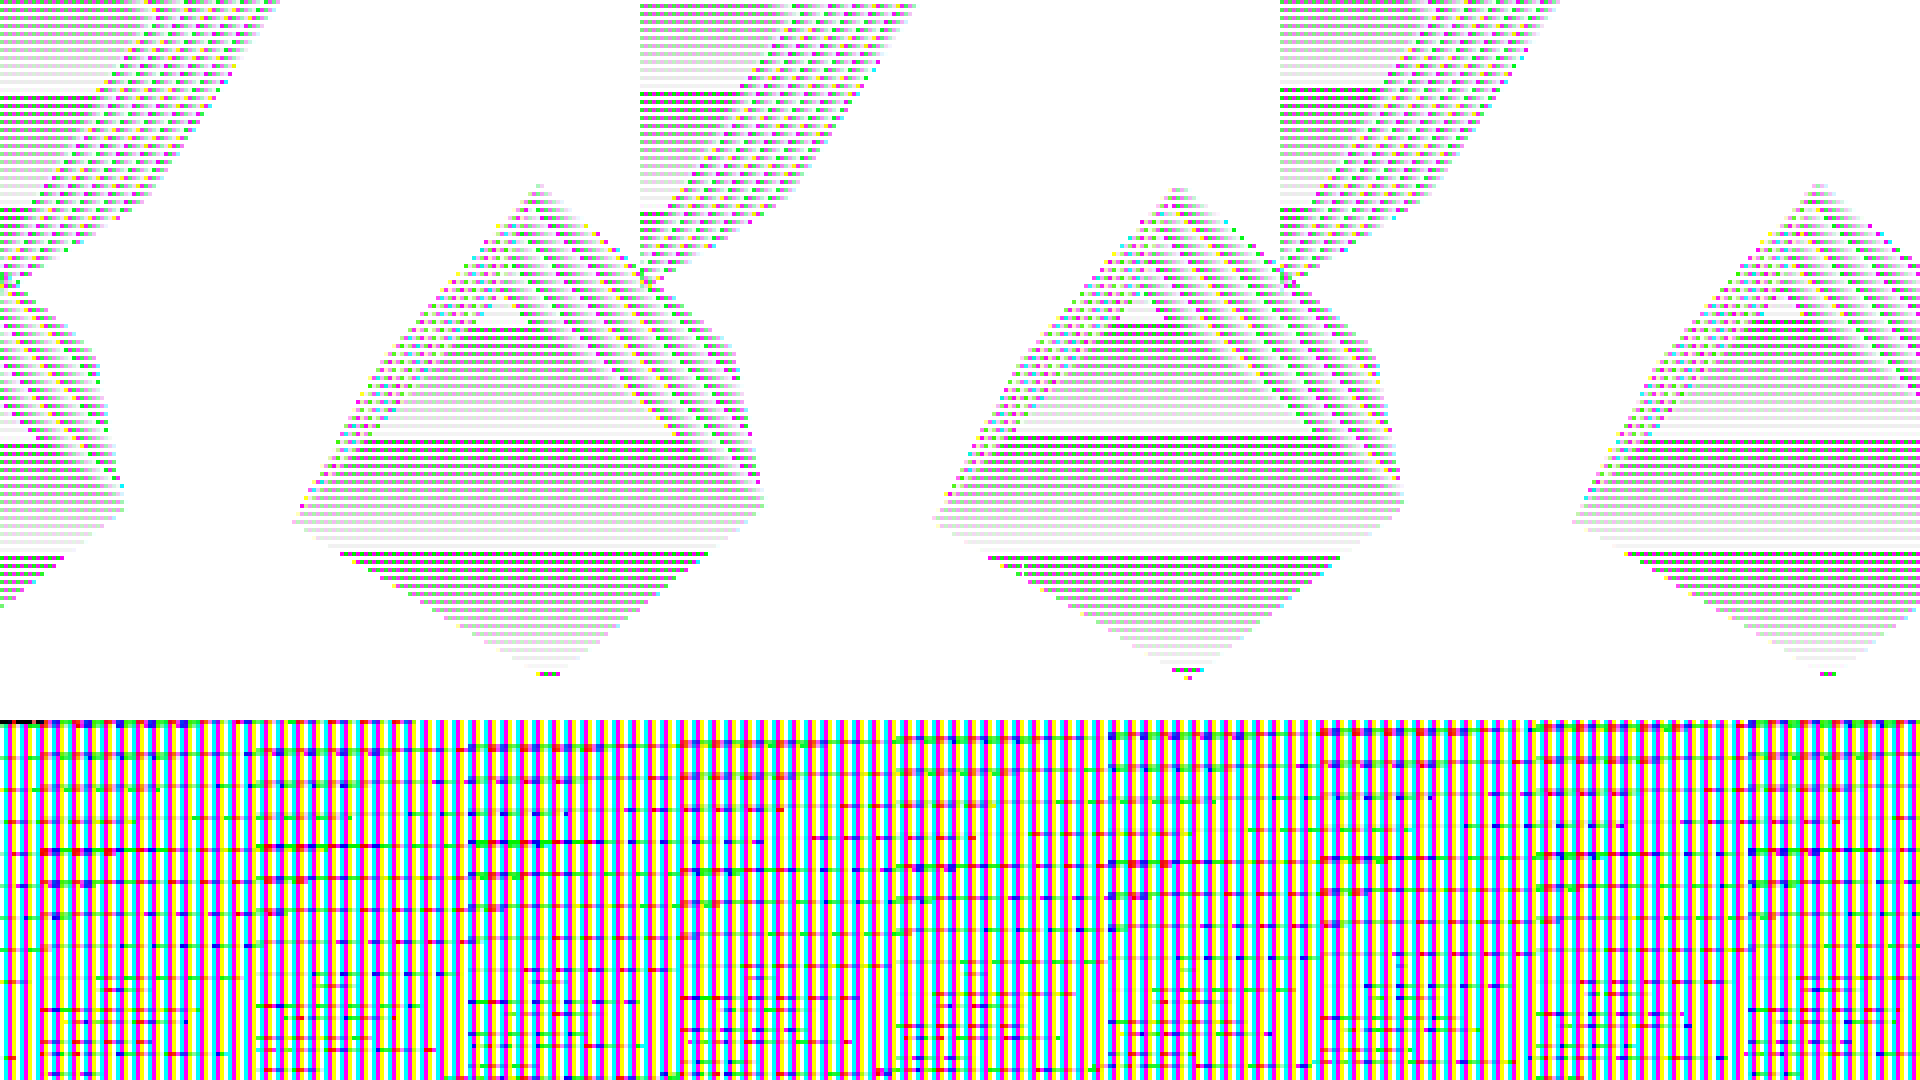 Software rendering glitch 2